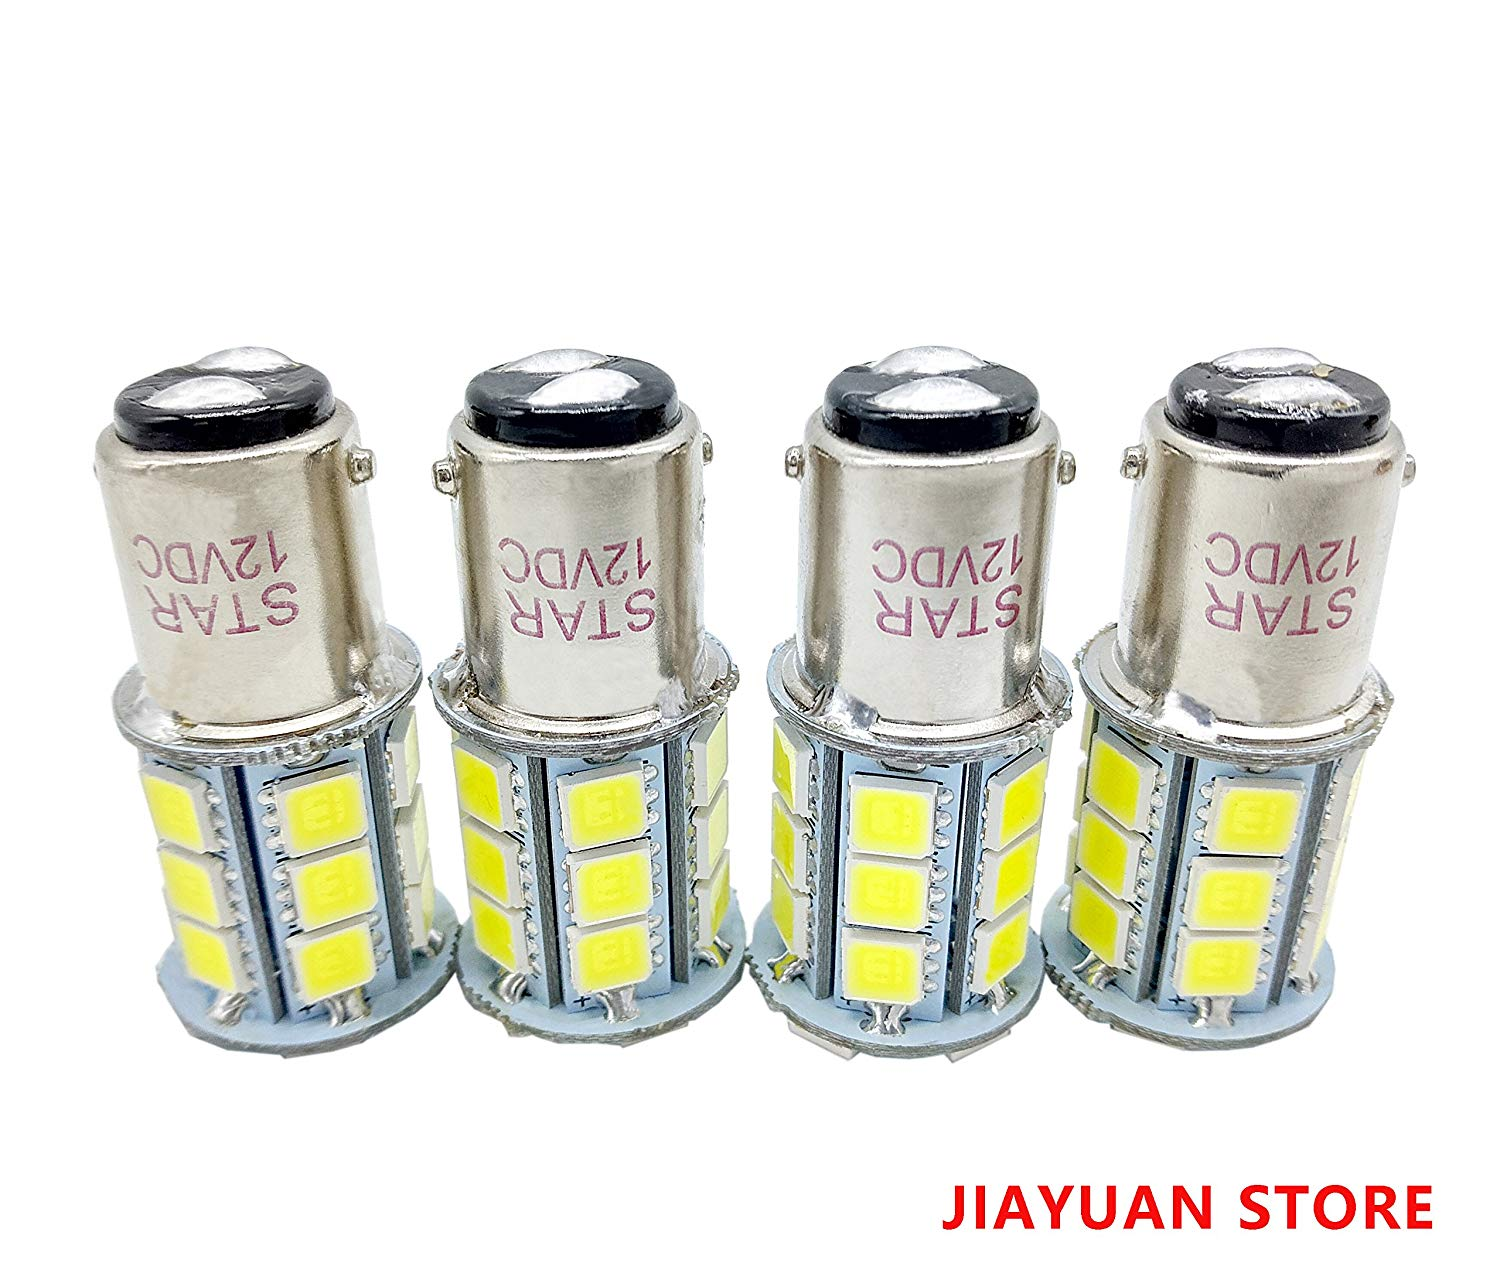 JIAYUAN 4 x BA15D 24 SMD 1076 1142 68 90 1004 1130 1158 1176 1178 Motorcycle LED Bulbs Replacement for Marine Boat RV, Voltage DC12V, White 6000K